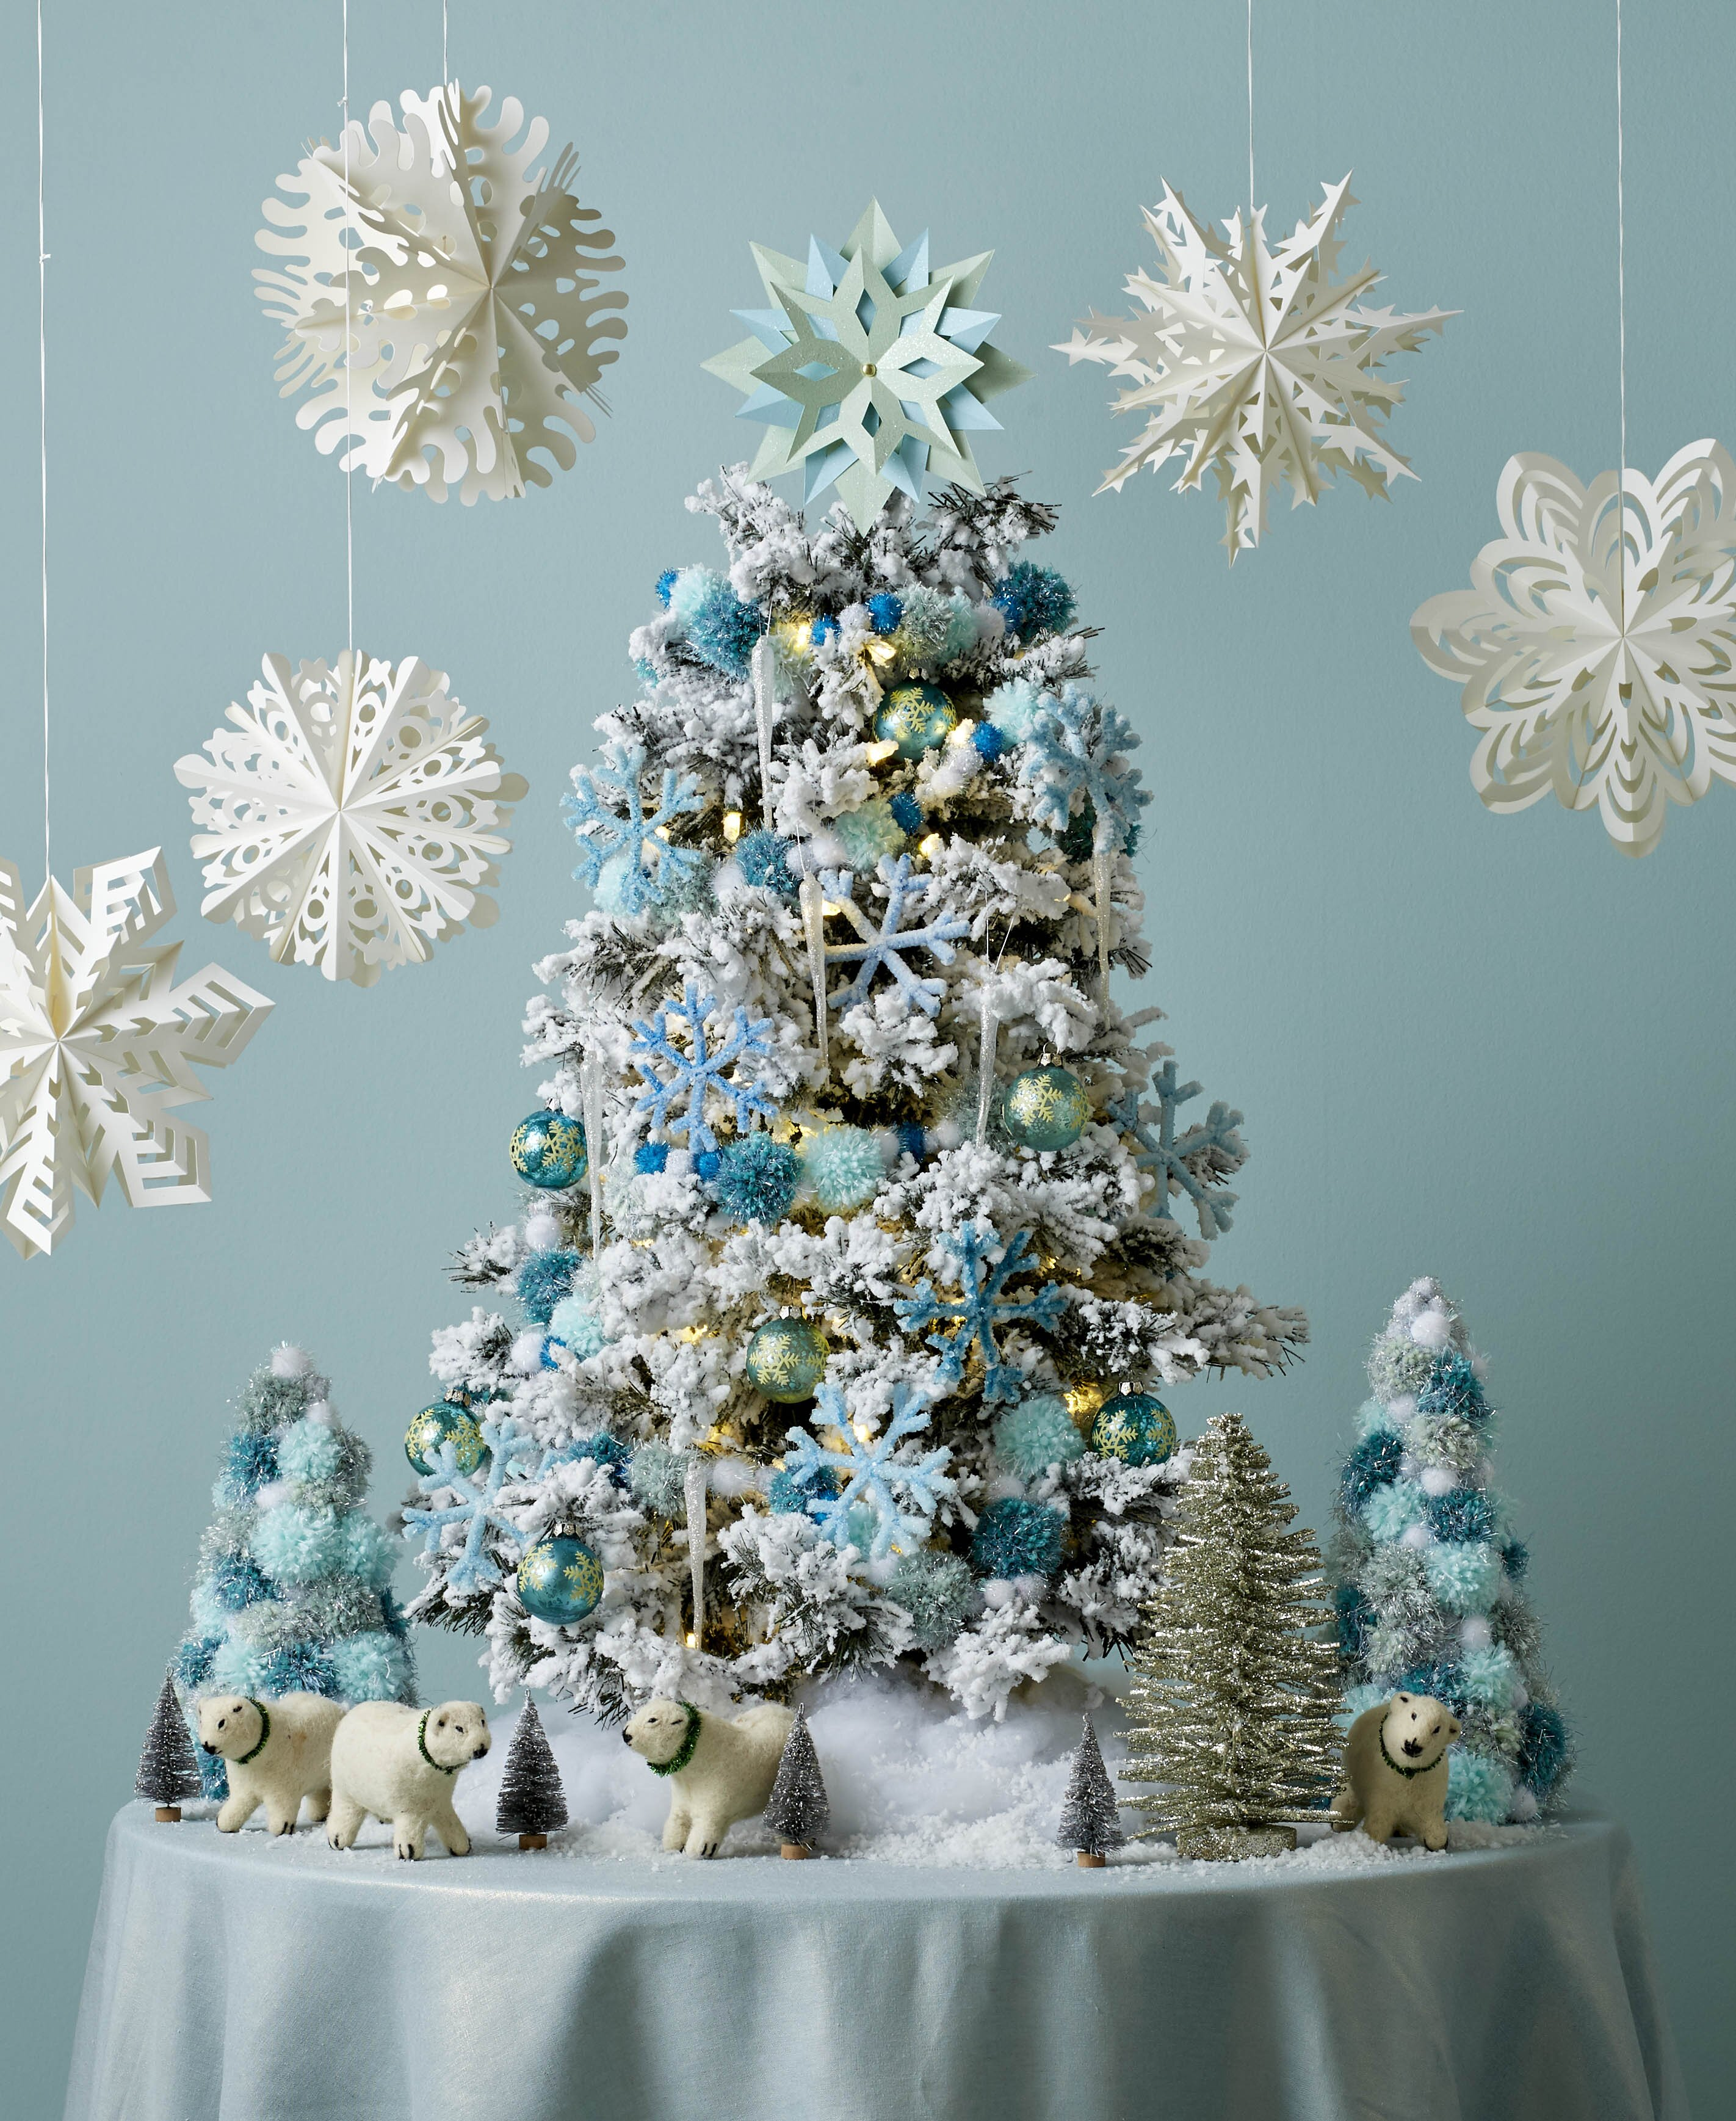 Christmas Tree Spray Snow.These Tabletop Christmas Trees Will Transform Your Holiday Table